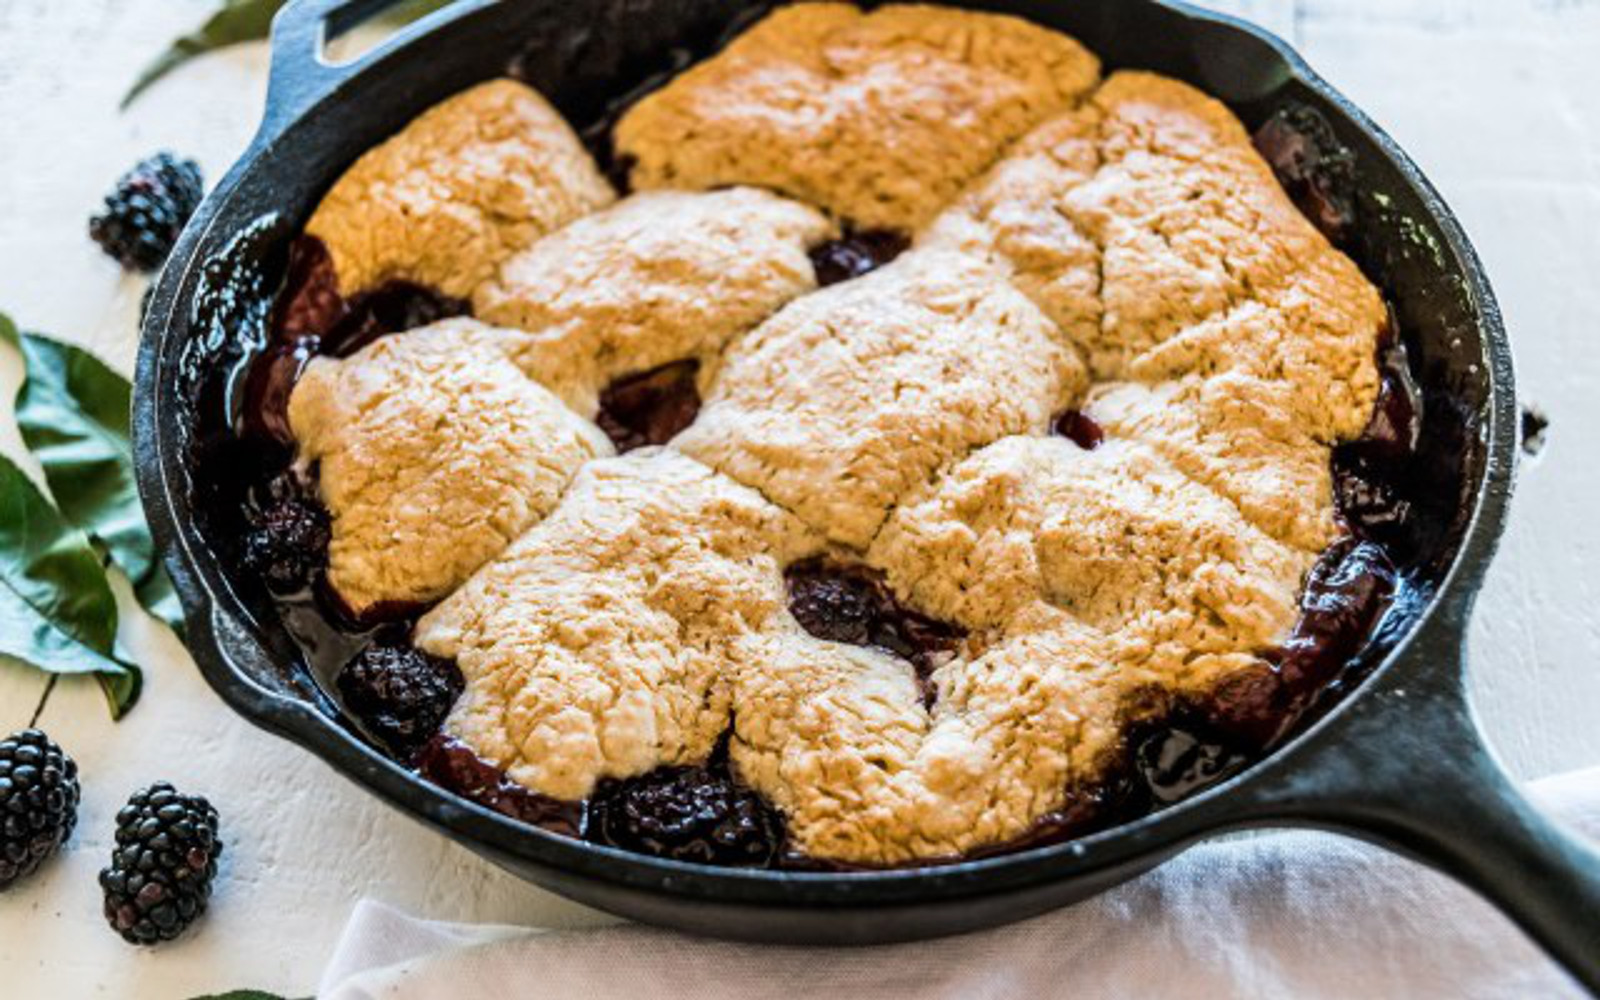 Vegan Blackberry Peach Cobbler With Ginger Spice Biscuits